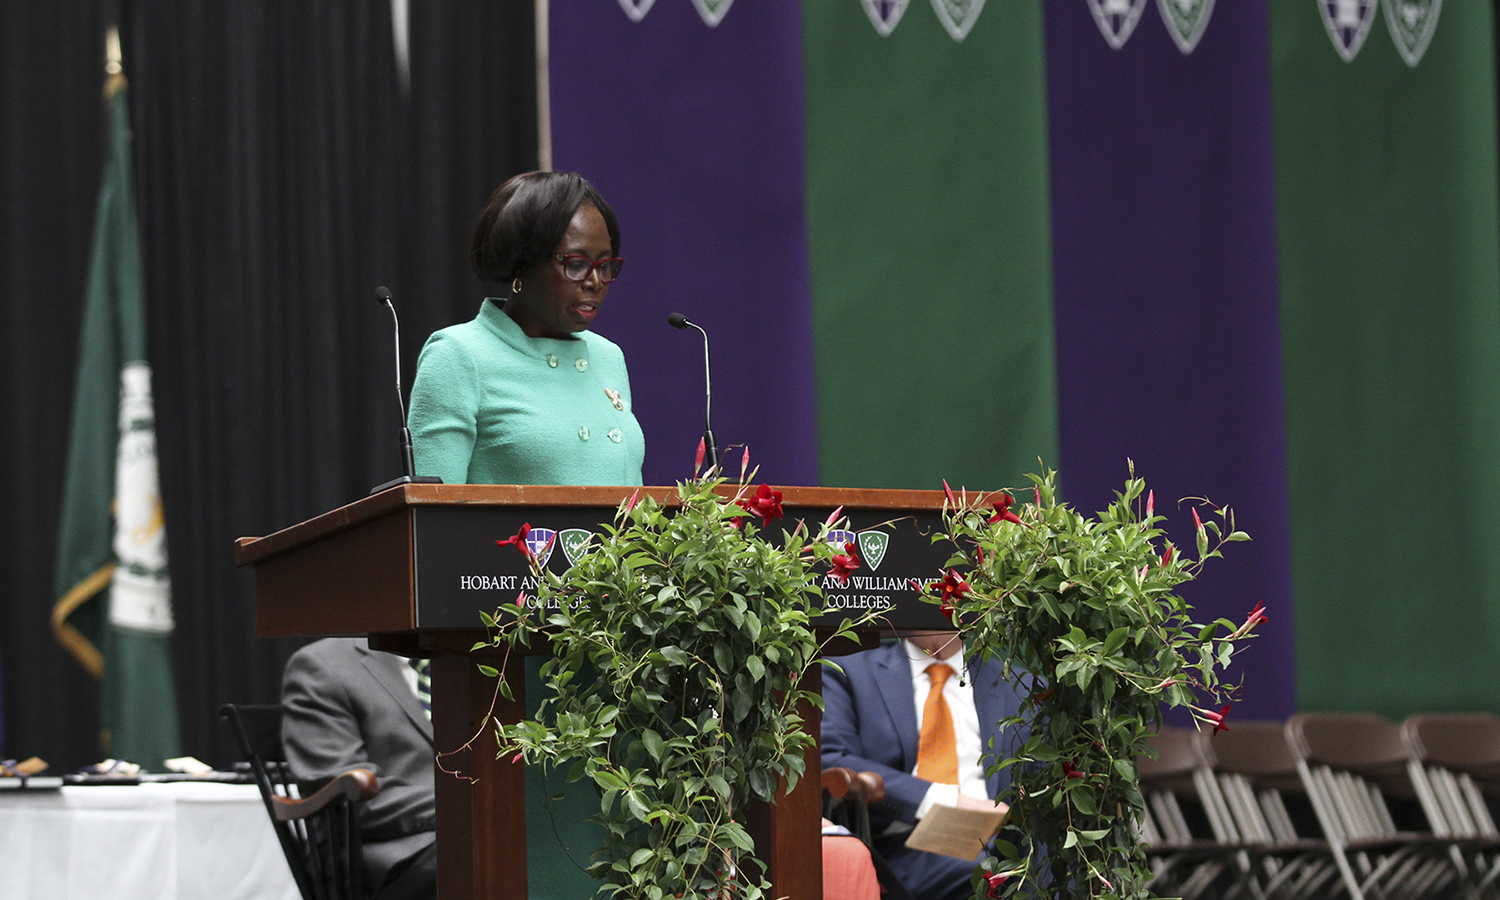 Provost and Dean of Faculty Titi Ufomata welcomes students and their families to the annual Academic Achievement Awards Ceremony in the Robert A. Bristol Field House on Saturday.